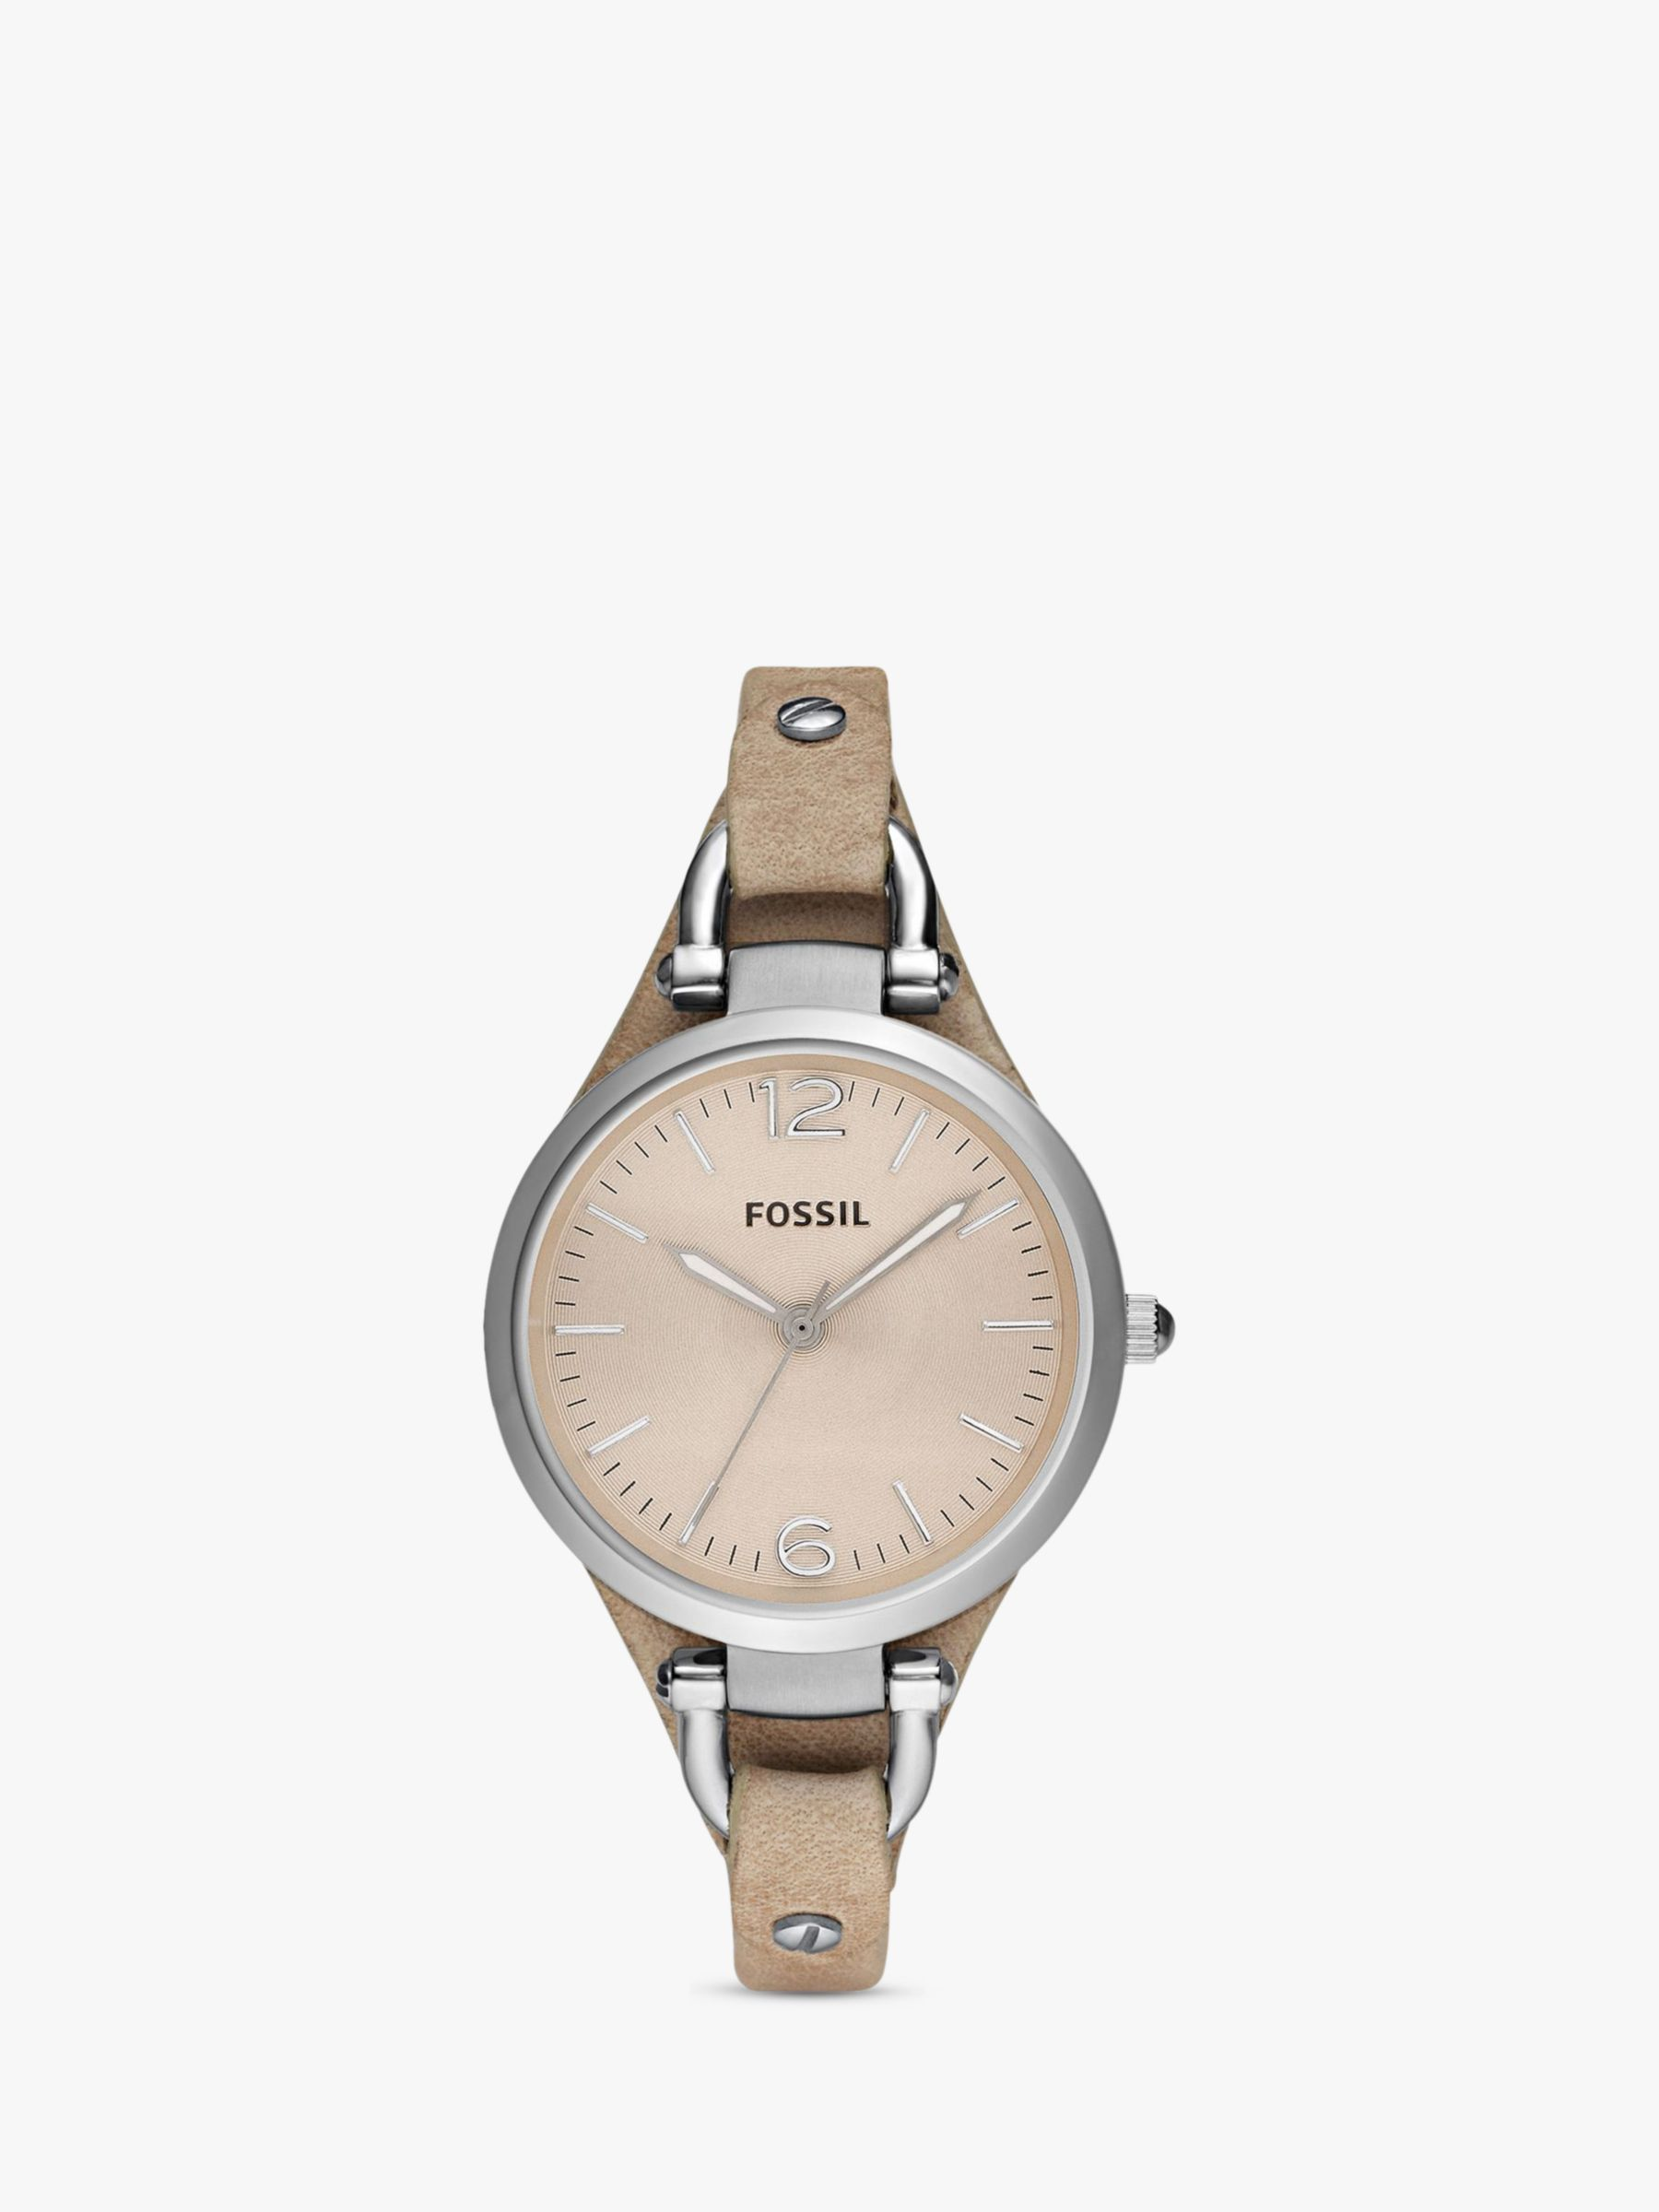 Fossil Fossil ES2830 Georgia Women's Leather Strap Watch, Sand